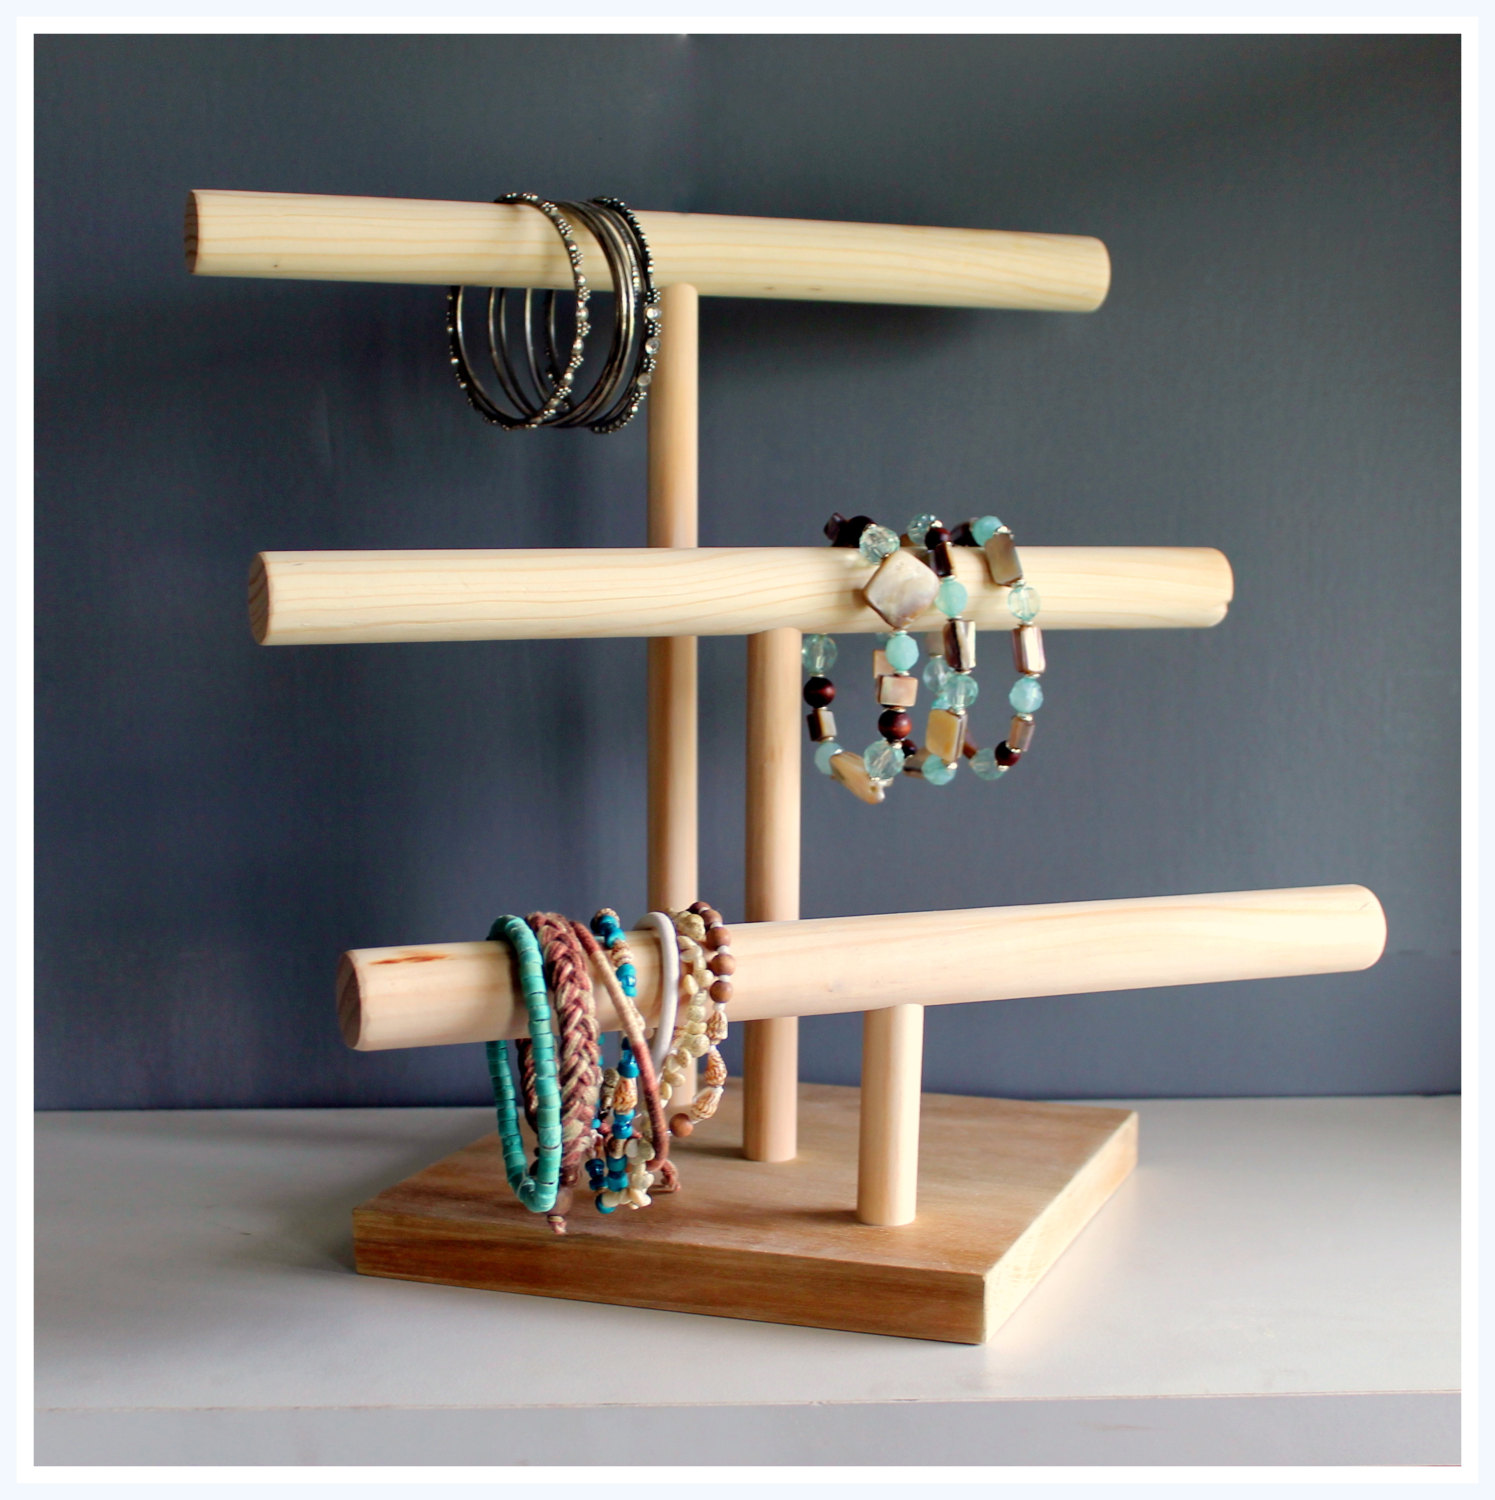 Jeri's Organizing & Decluttering News: Cool Jewelry Stands